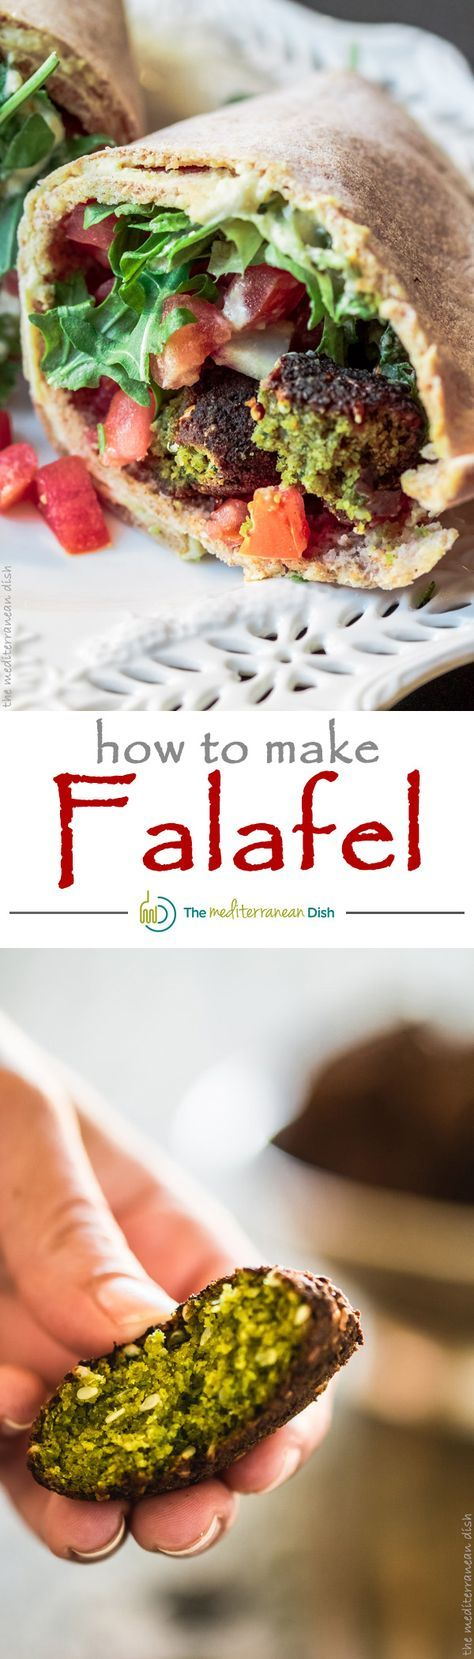 A step-by-step tutorial for how to make falafel! An authentic falafel recipe just as  you would find in the streets of the Middle East! Check it out!